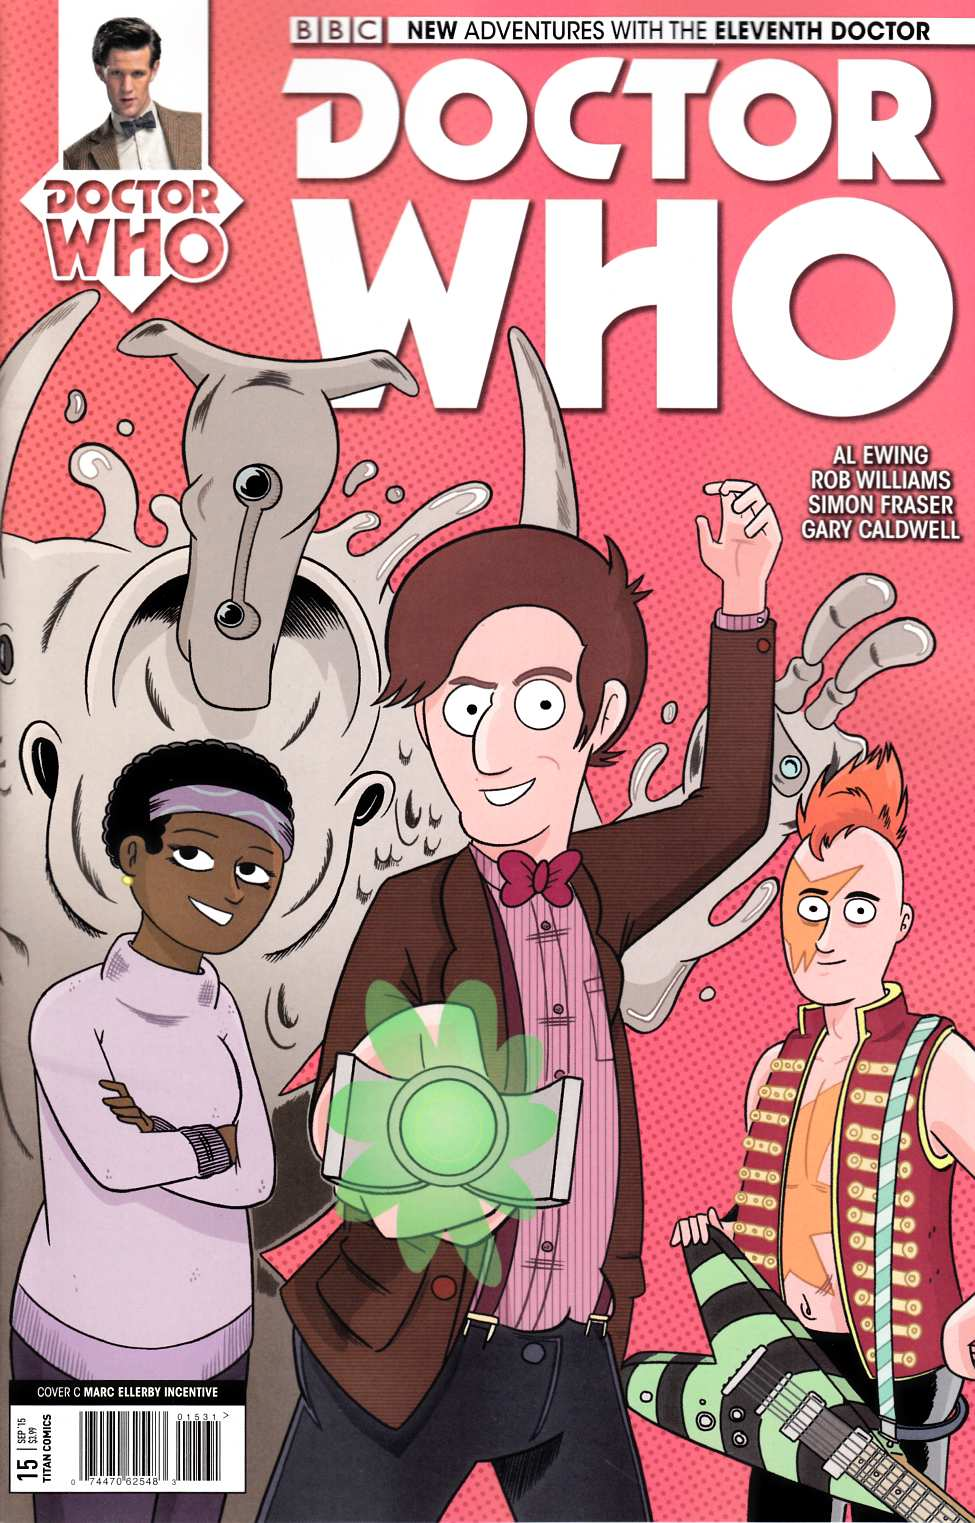 Doctor Who 11th Doctor #15 Ellerby Incentive Cover [Titan Comic] THUMBNAIL